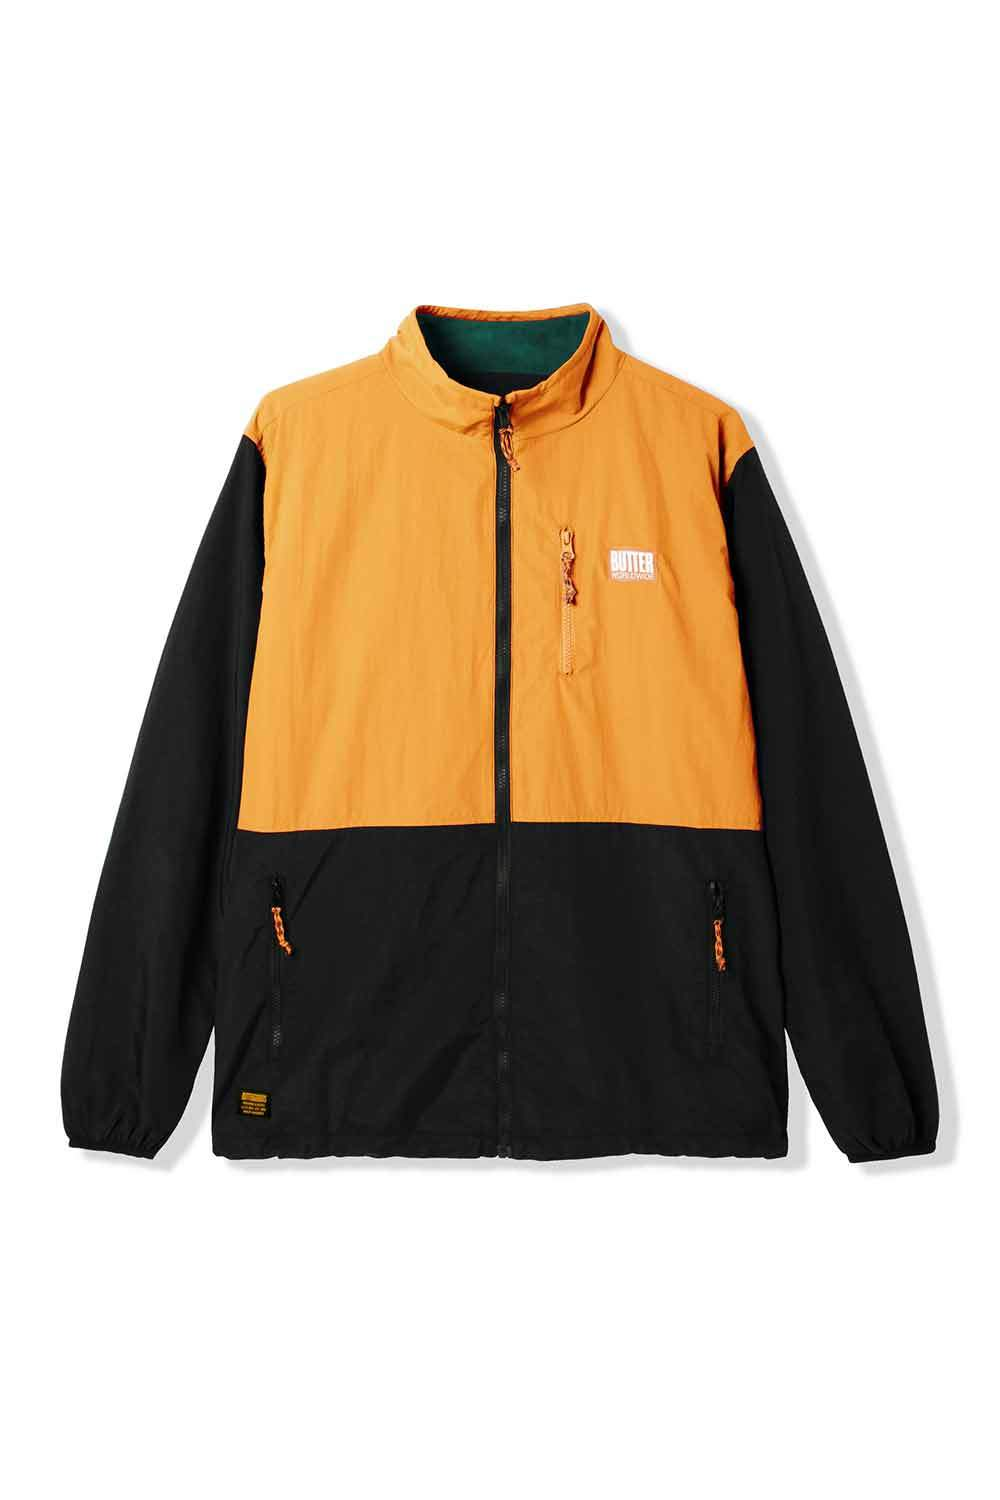 Butter Goods Search Jacket - Black/Peach | Shop Butter Goods Online